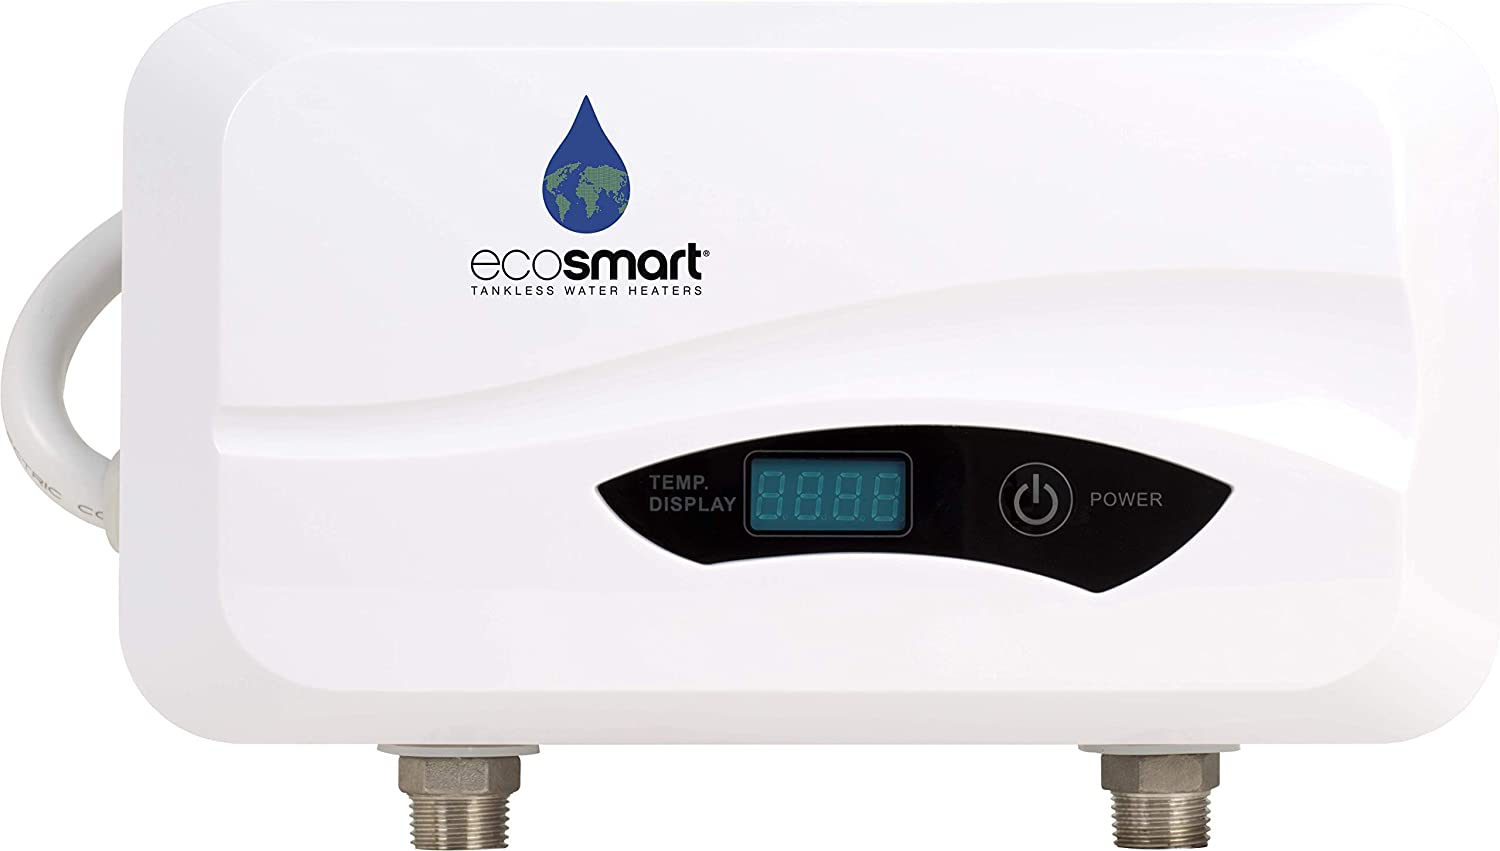 Ecosmart Point of Use Water Heater